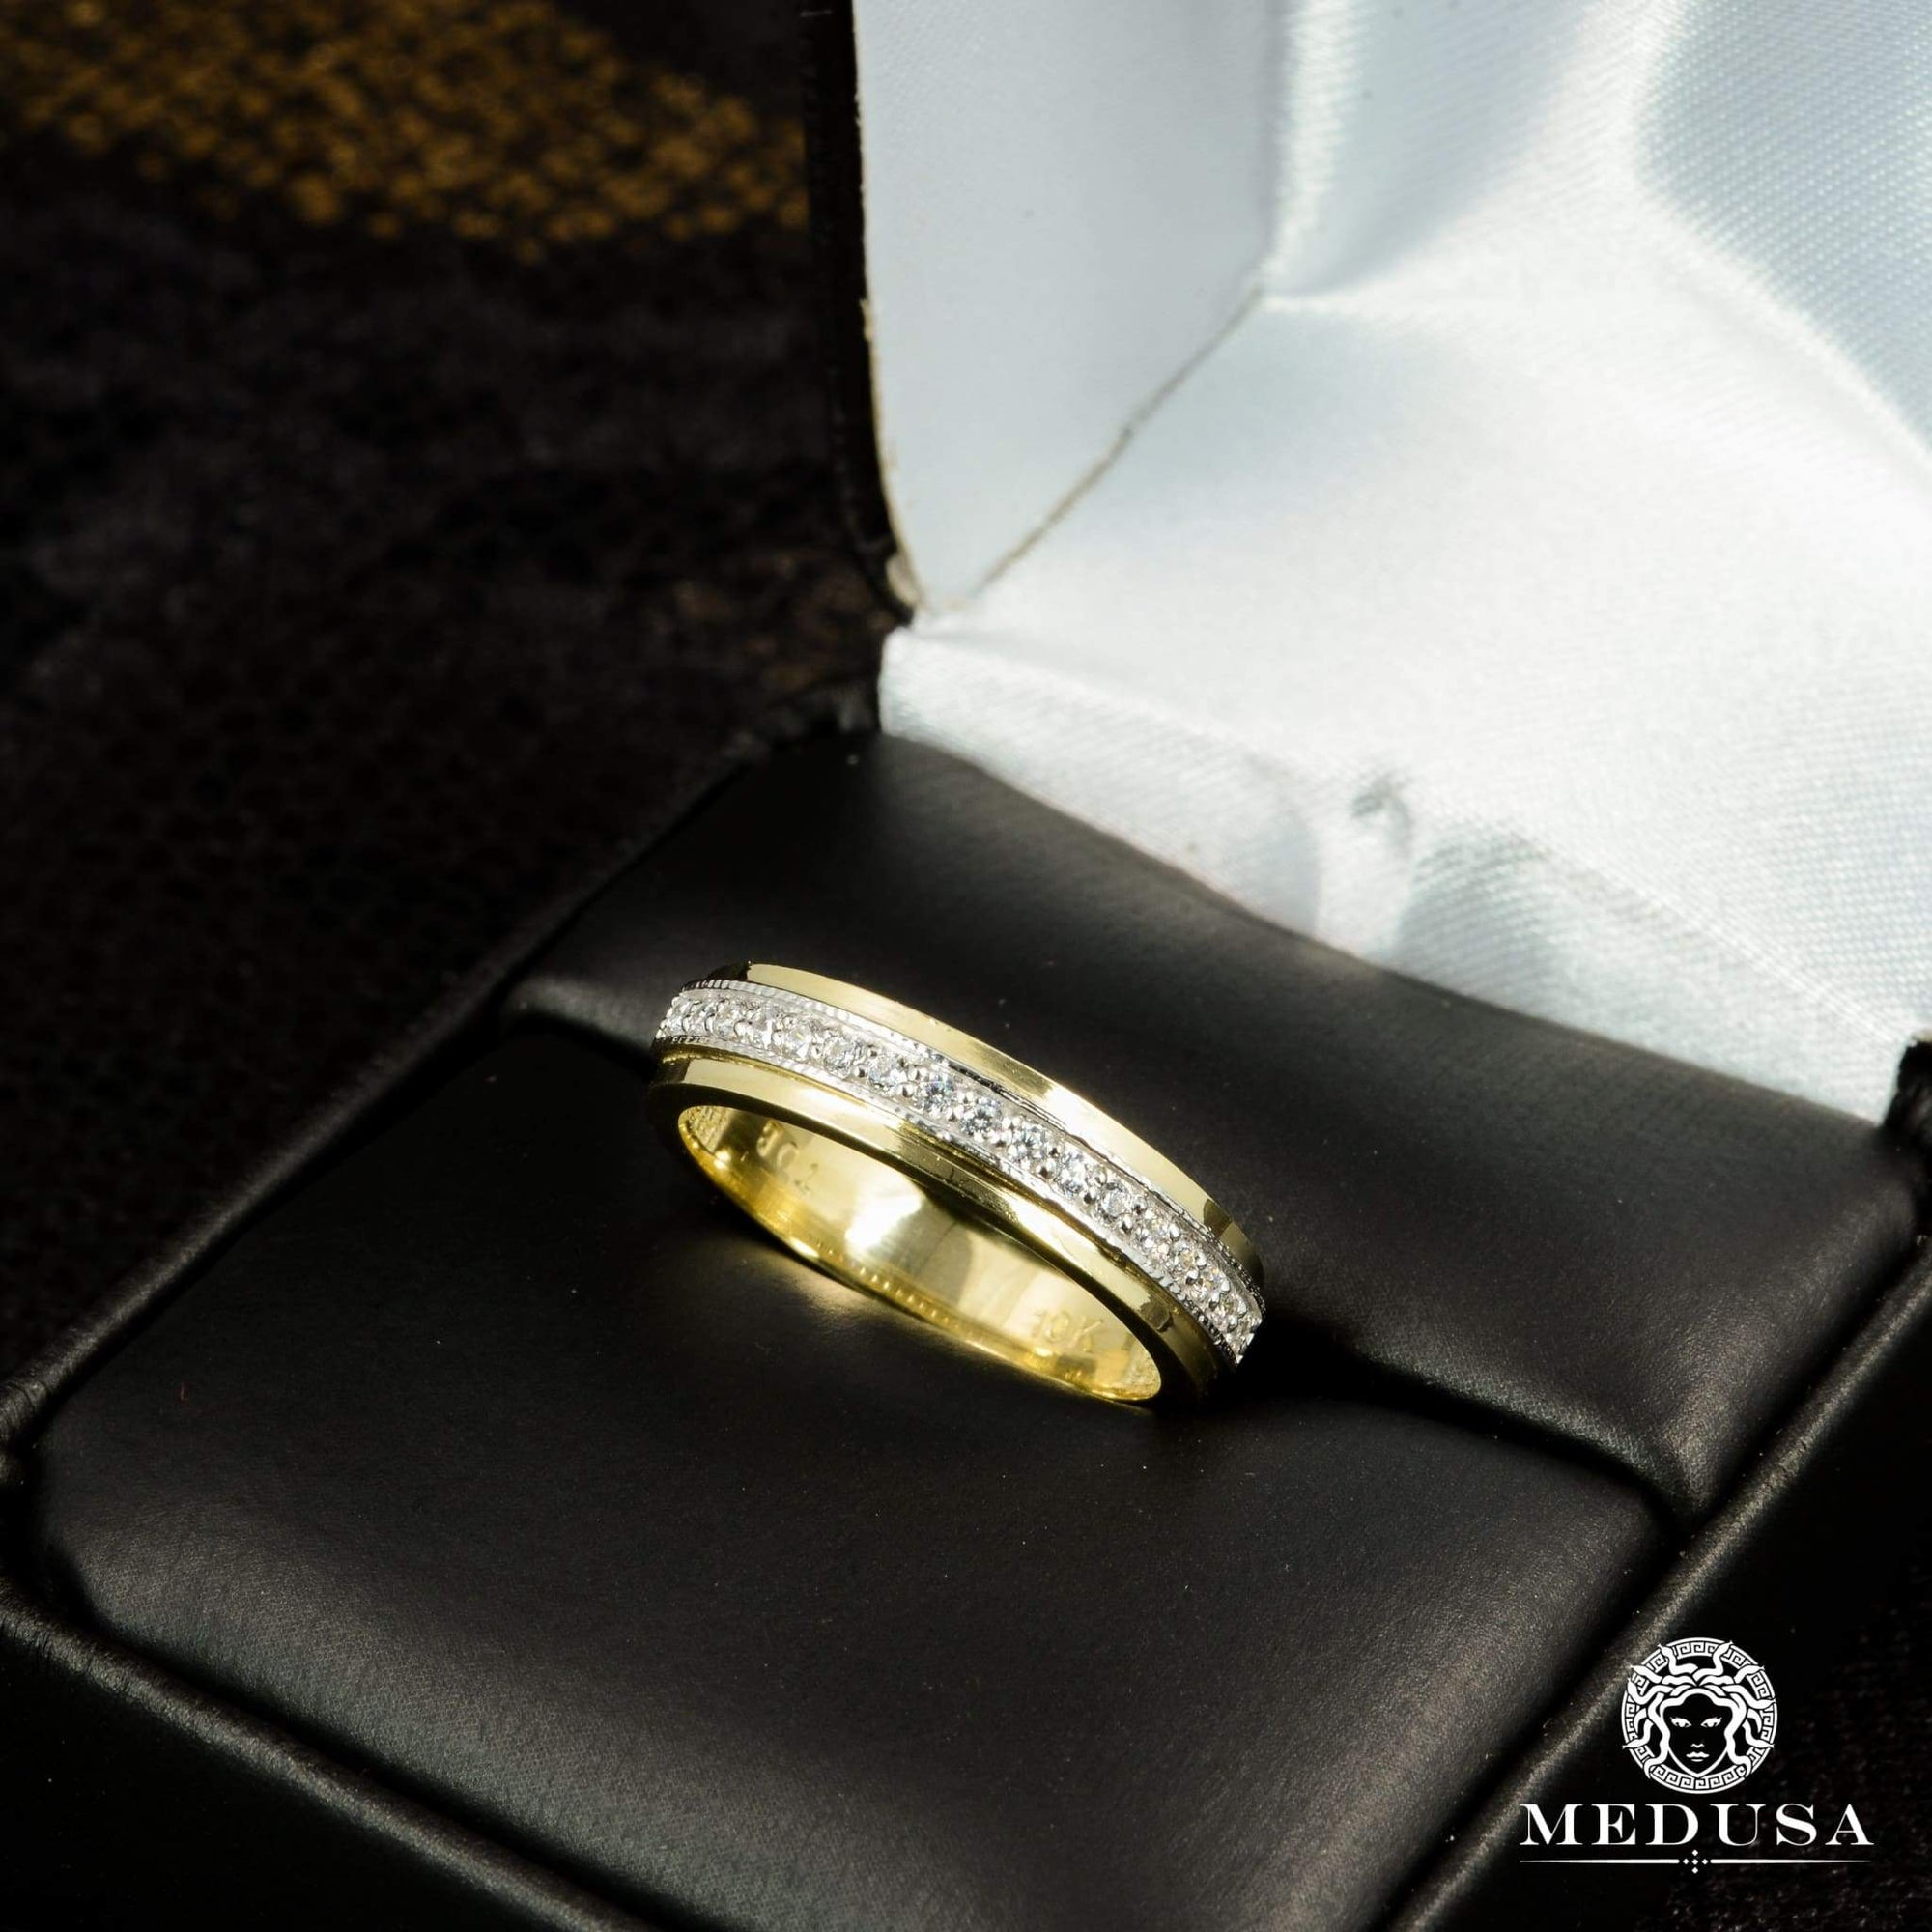 Bague à Diamants en Or 14K | Bague Fiançaille Trinity F11 - MA0736